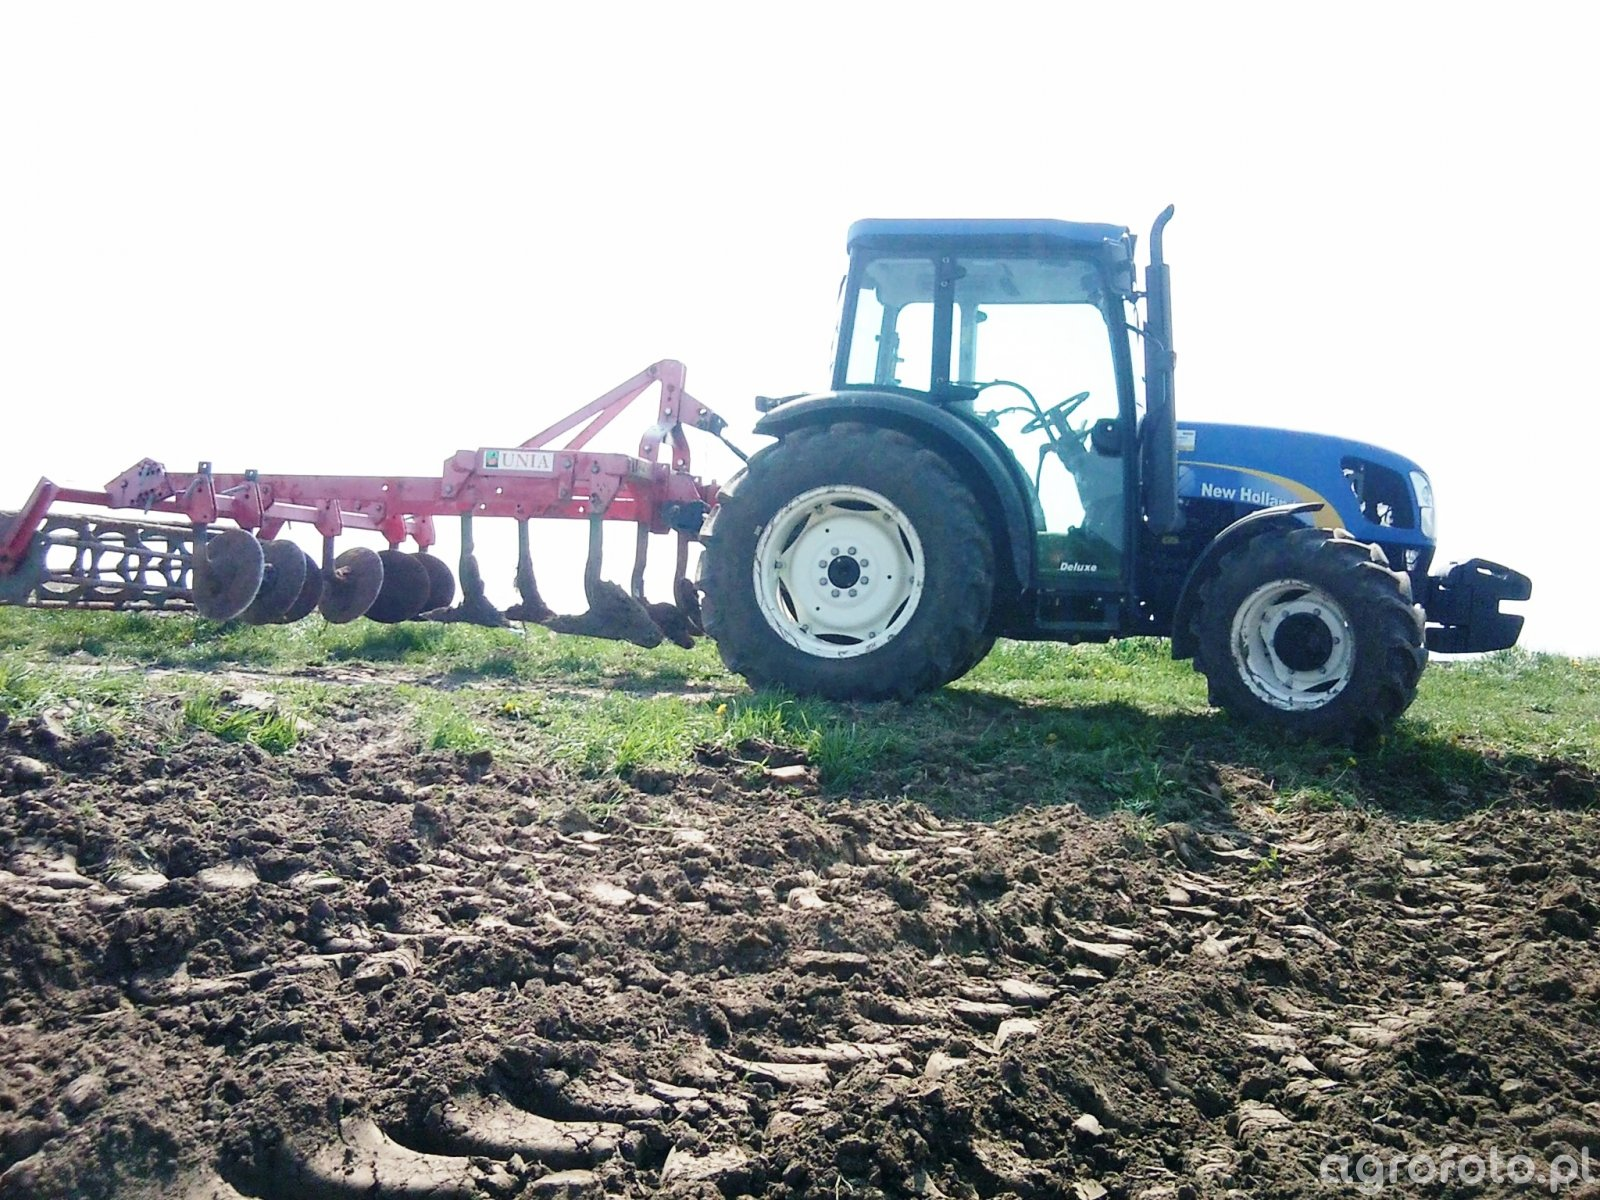 New Holland T4030 Deluxe i Unia KOS 2.1